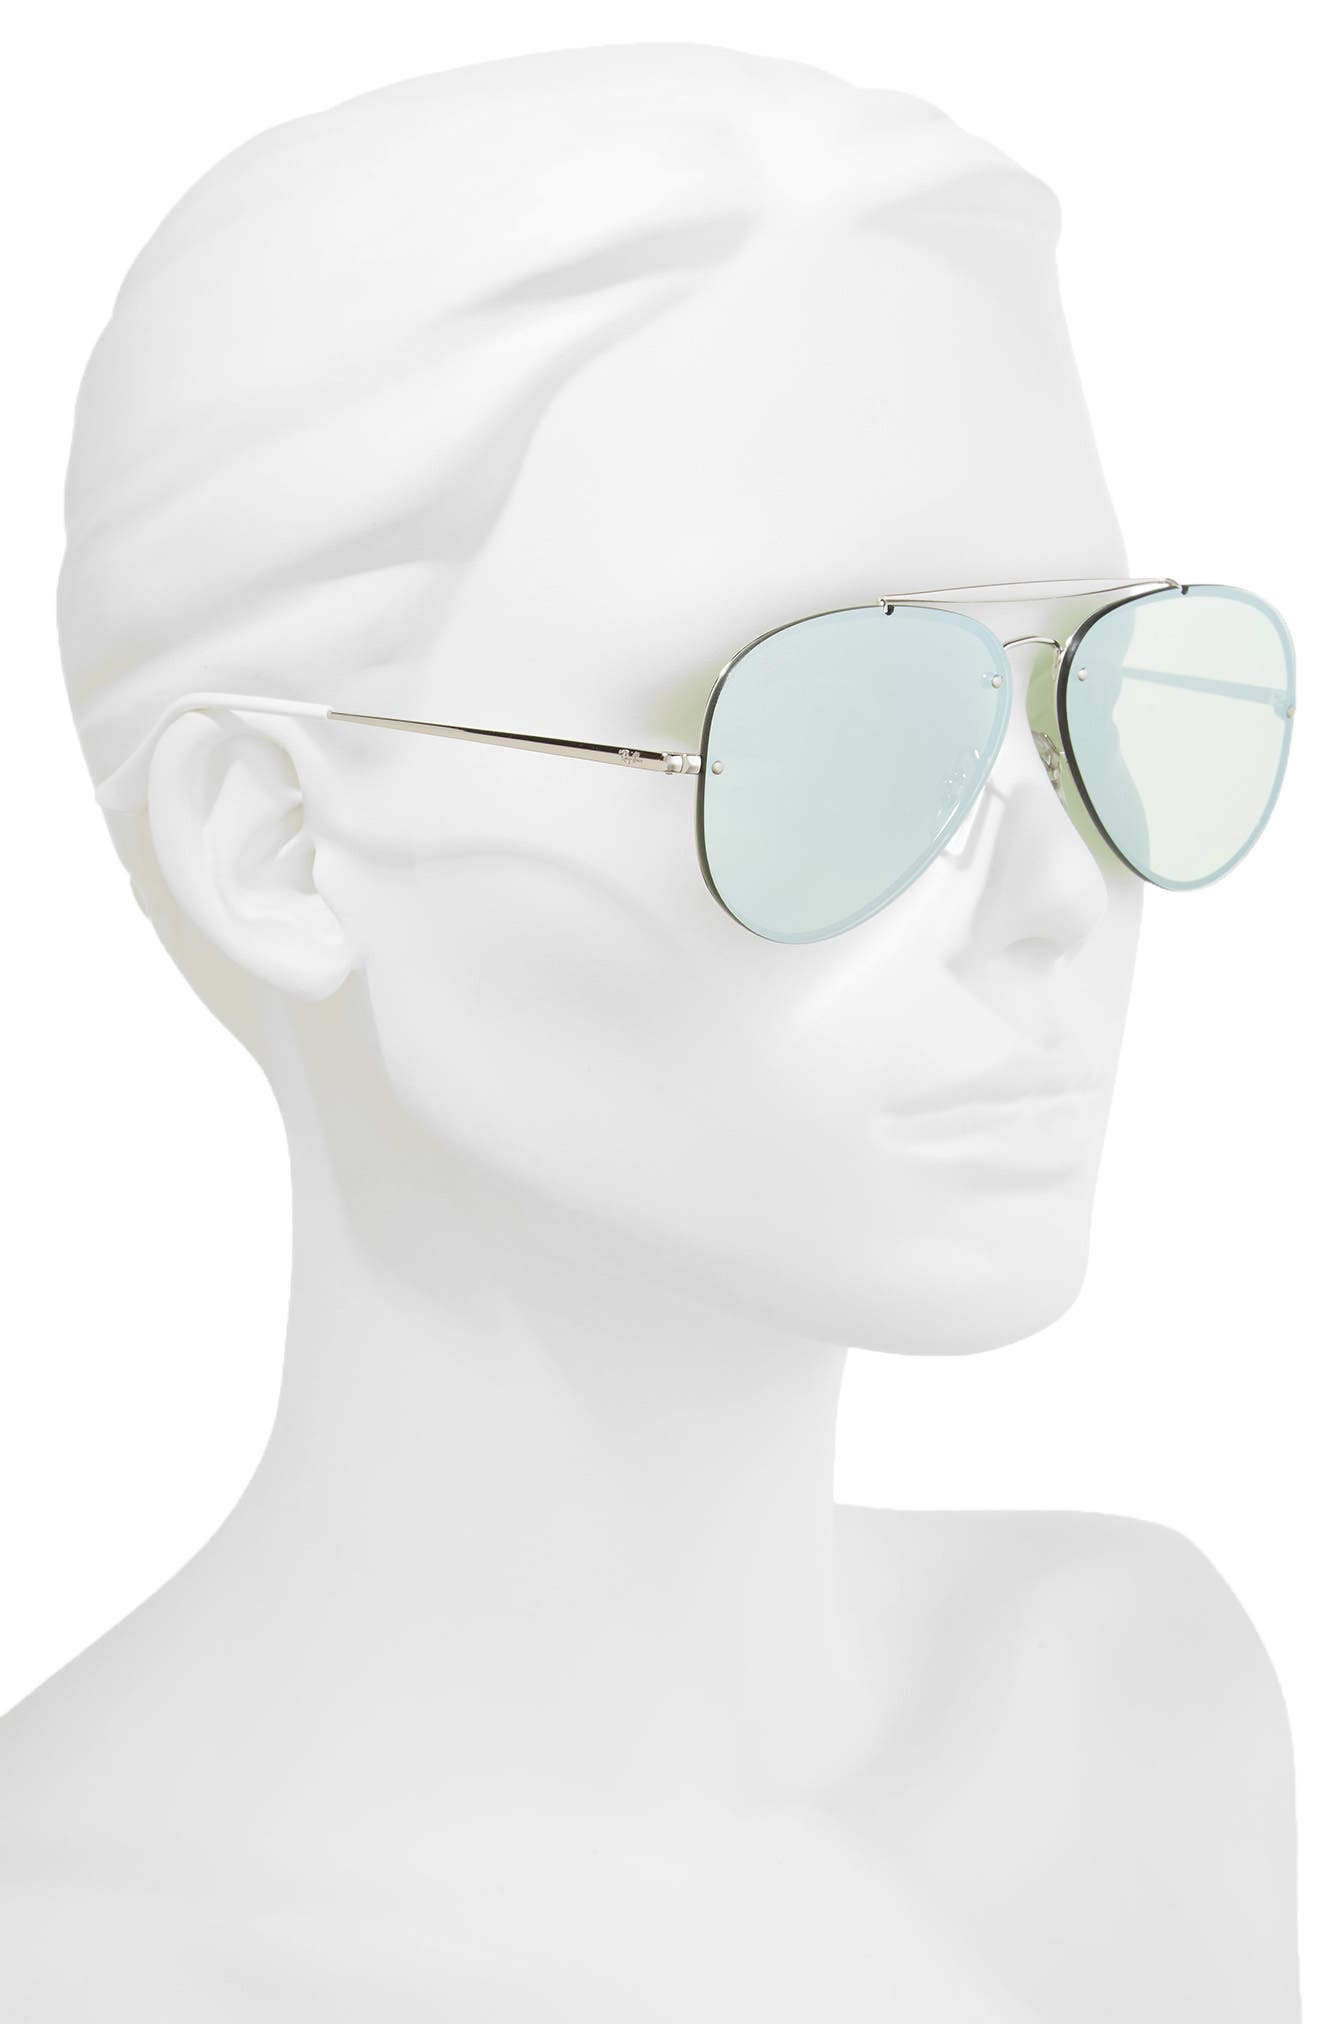 61mm Mirrored Lens Aviator Sunglasses,                             Alternate thumbnail 3, color,